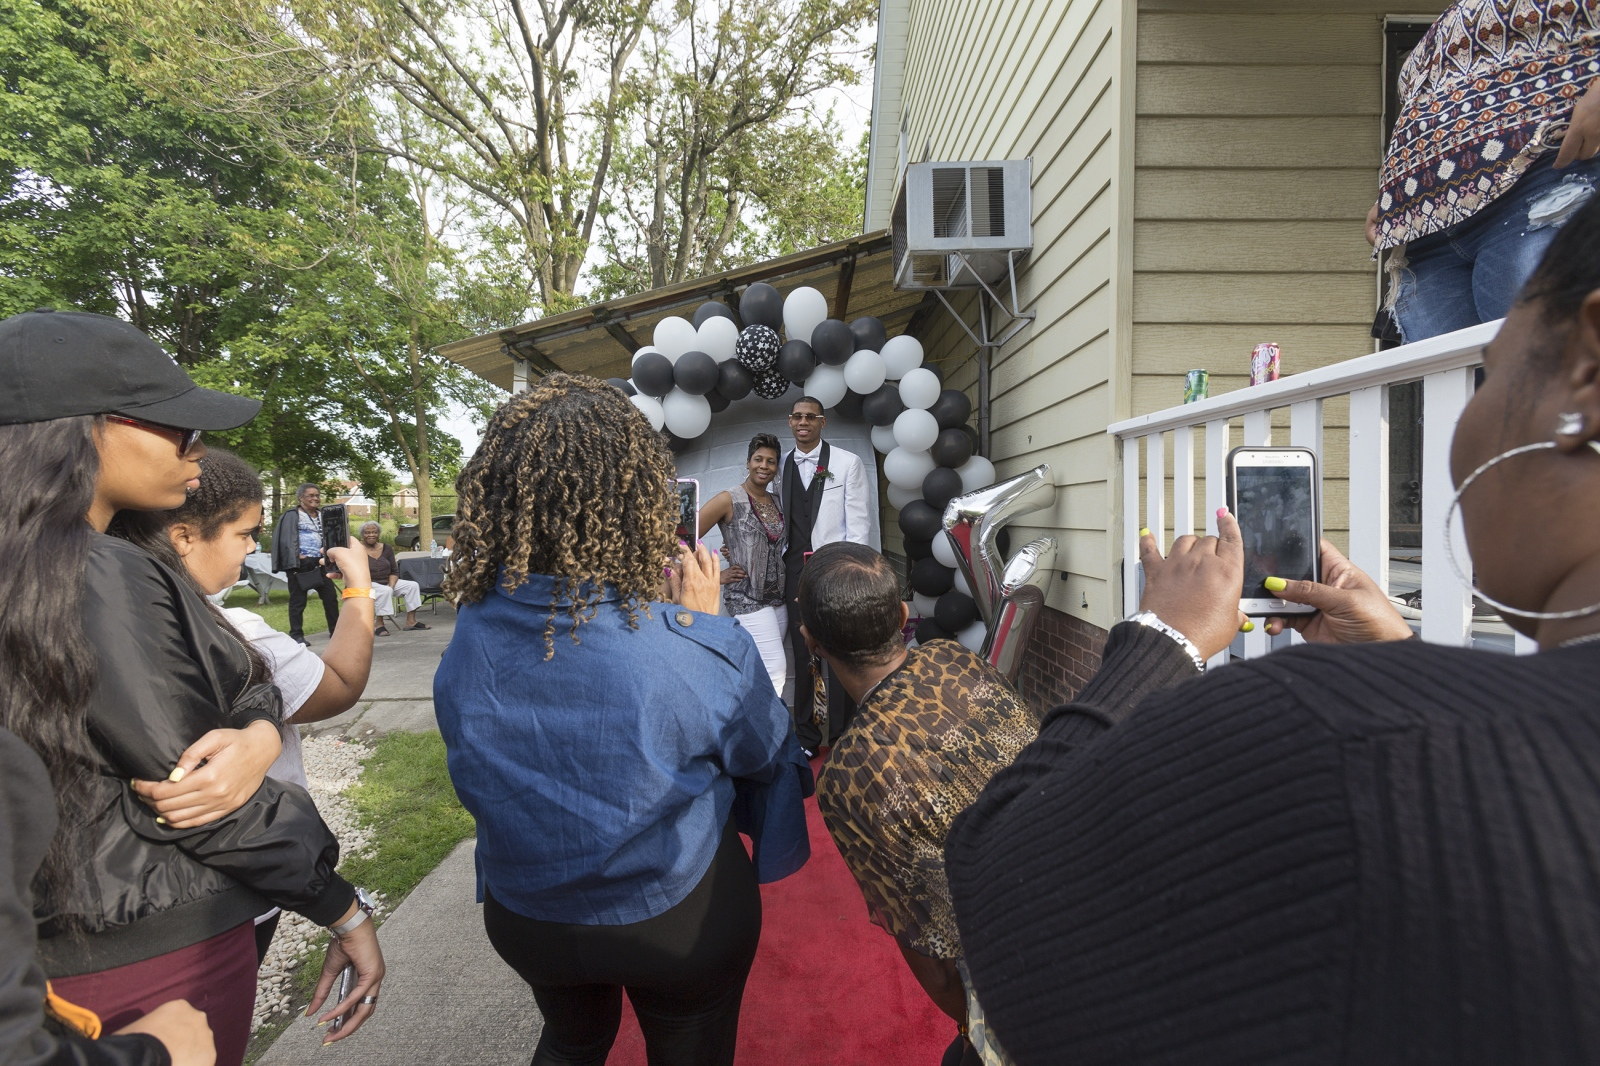 LaShaunda Forrest, left, and her son Michael Green pose for photographs before he leaves for prom. LaShaunda invited friends, neighbors, and family over to eat dinner and celebrate this milestone in Michael's life. Michael will graduate from Cass Technical High School in a couple of weeks and head to Miles College in Alabama on a basketball scholarship.